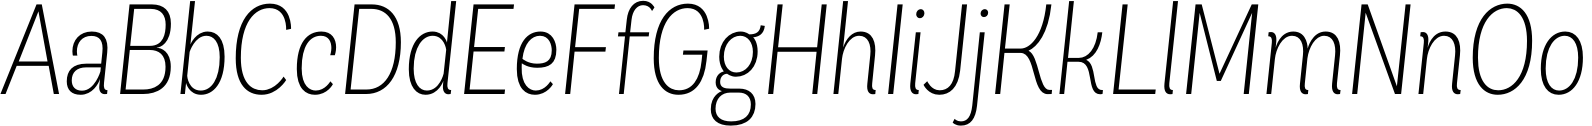 Andes Condensed ExtraLight Italic Font